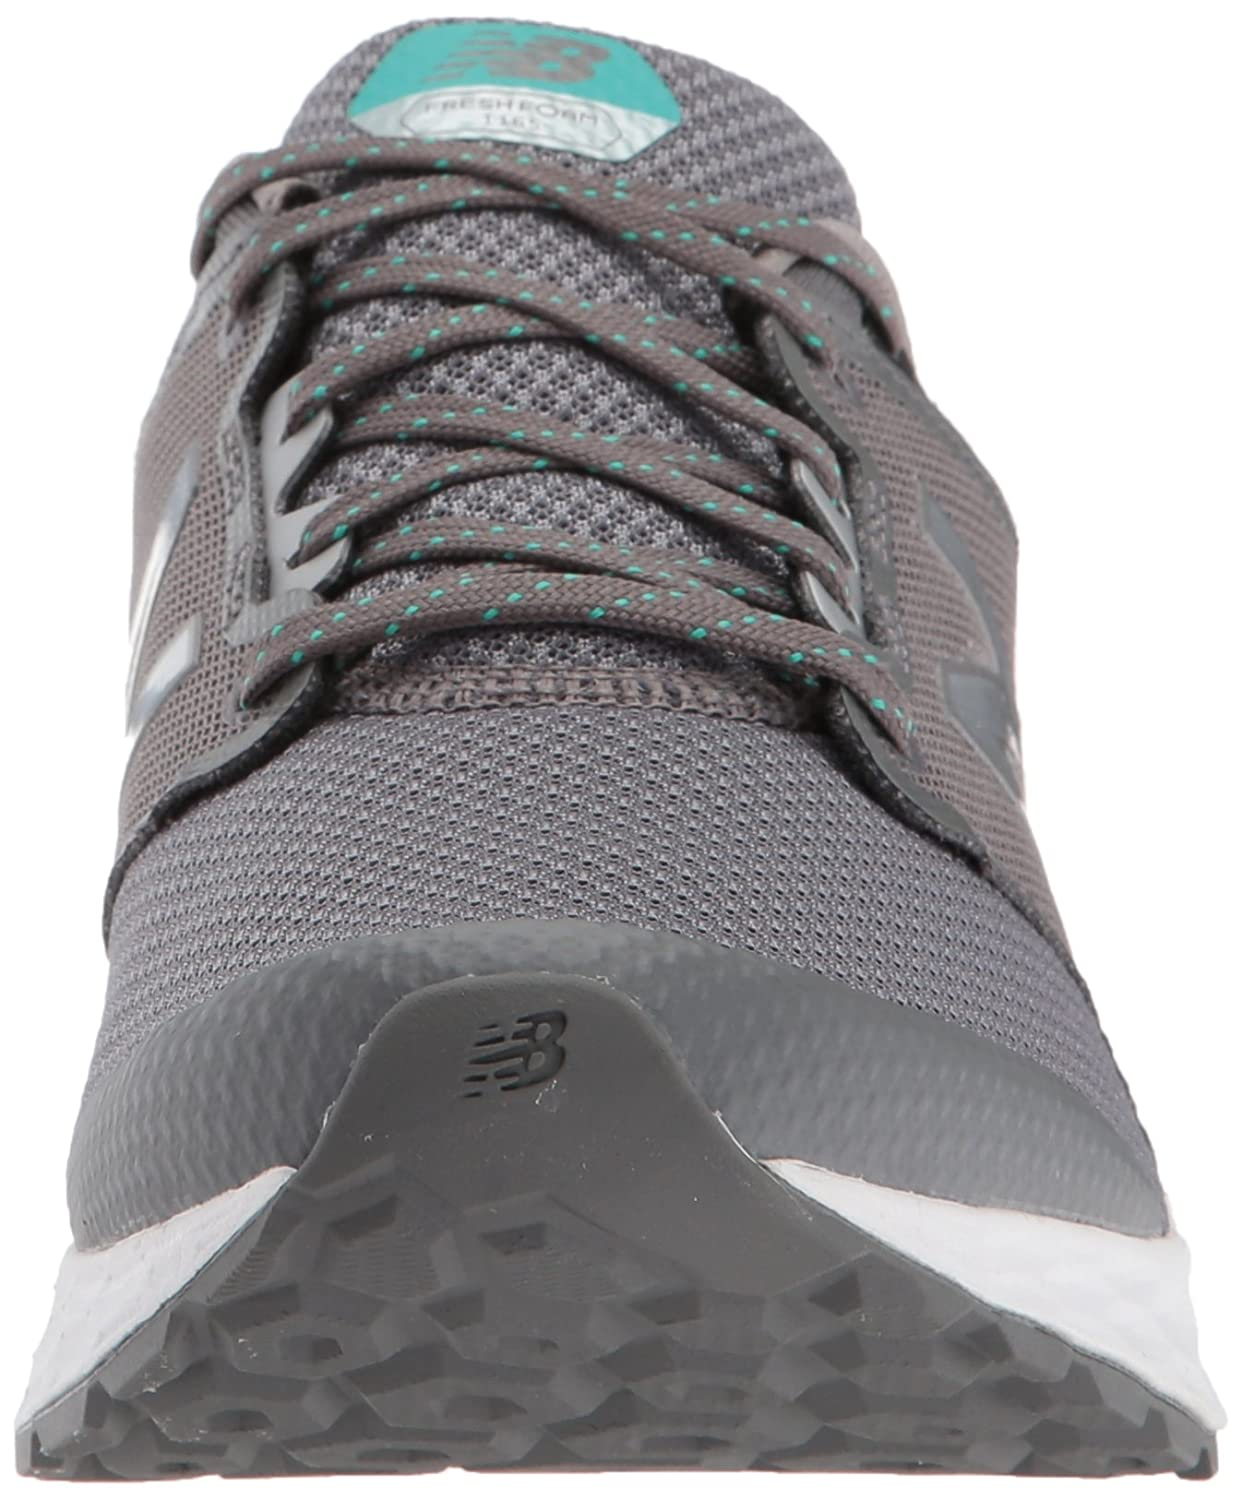 New Balance Walking Women's 1165v1 Fresh Foam Walking Balance Shoe B06XWYQPVW 6 2A US|Grey 1183bf